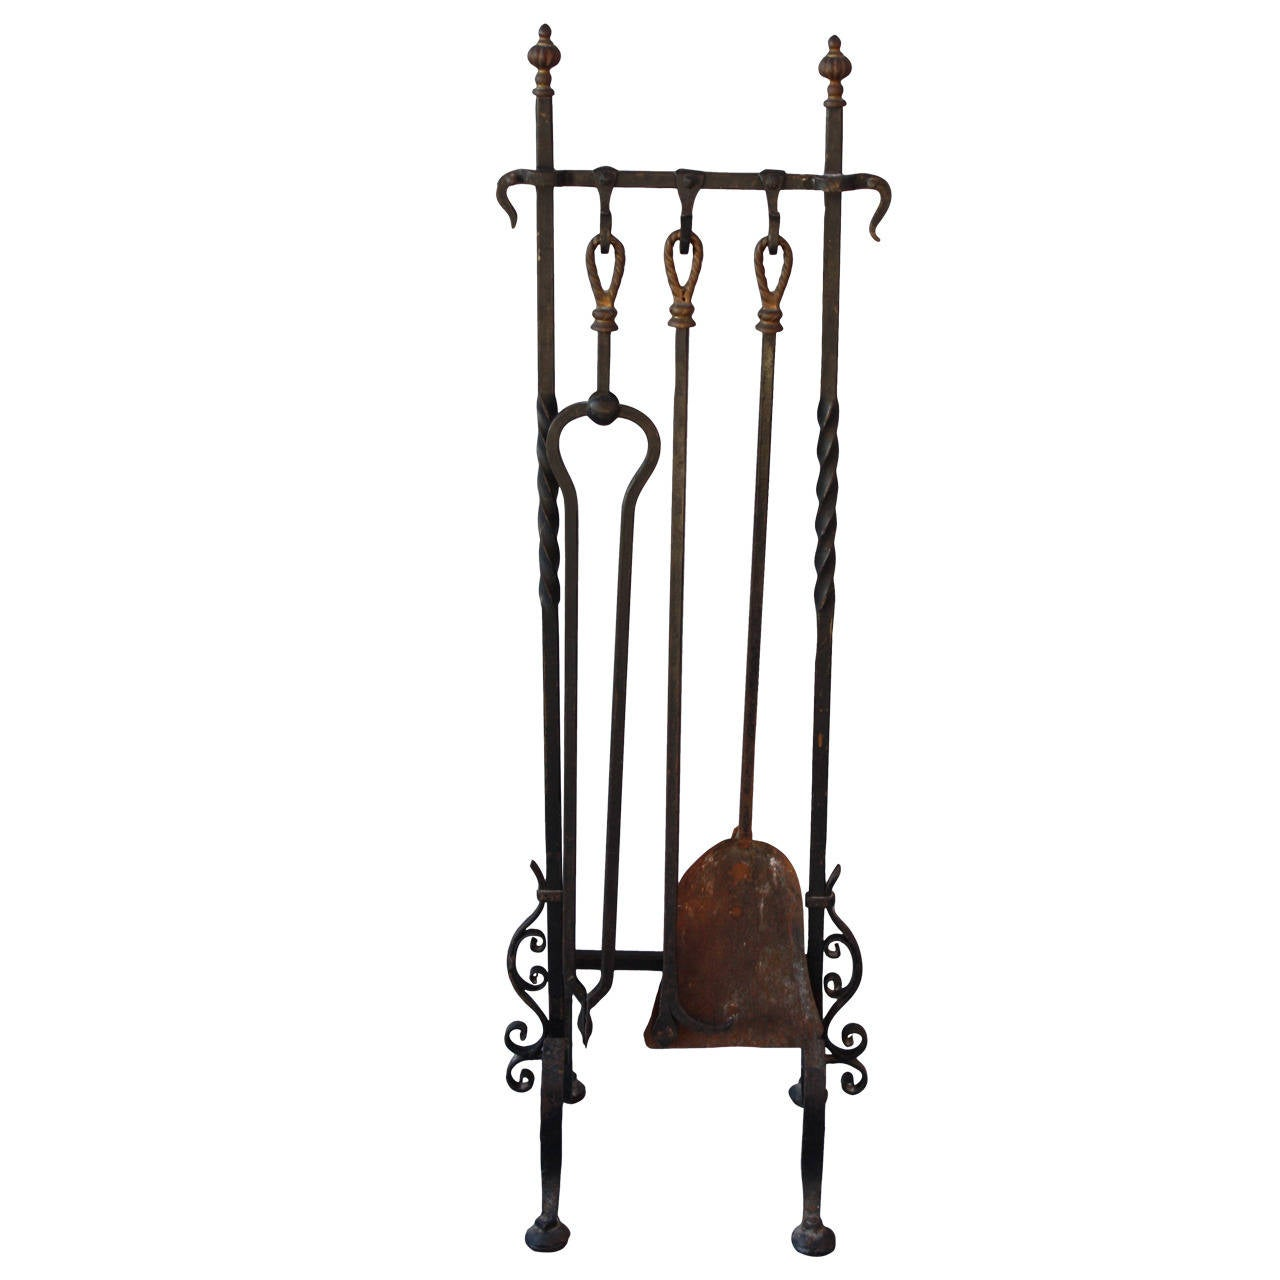 1920s Wrought Iron Fire Tool Set At 1stdibs